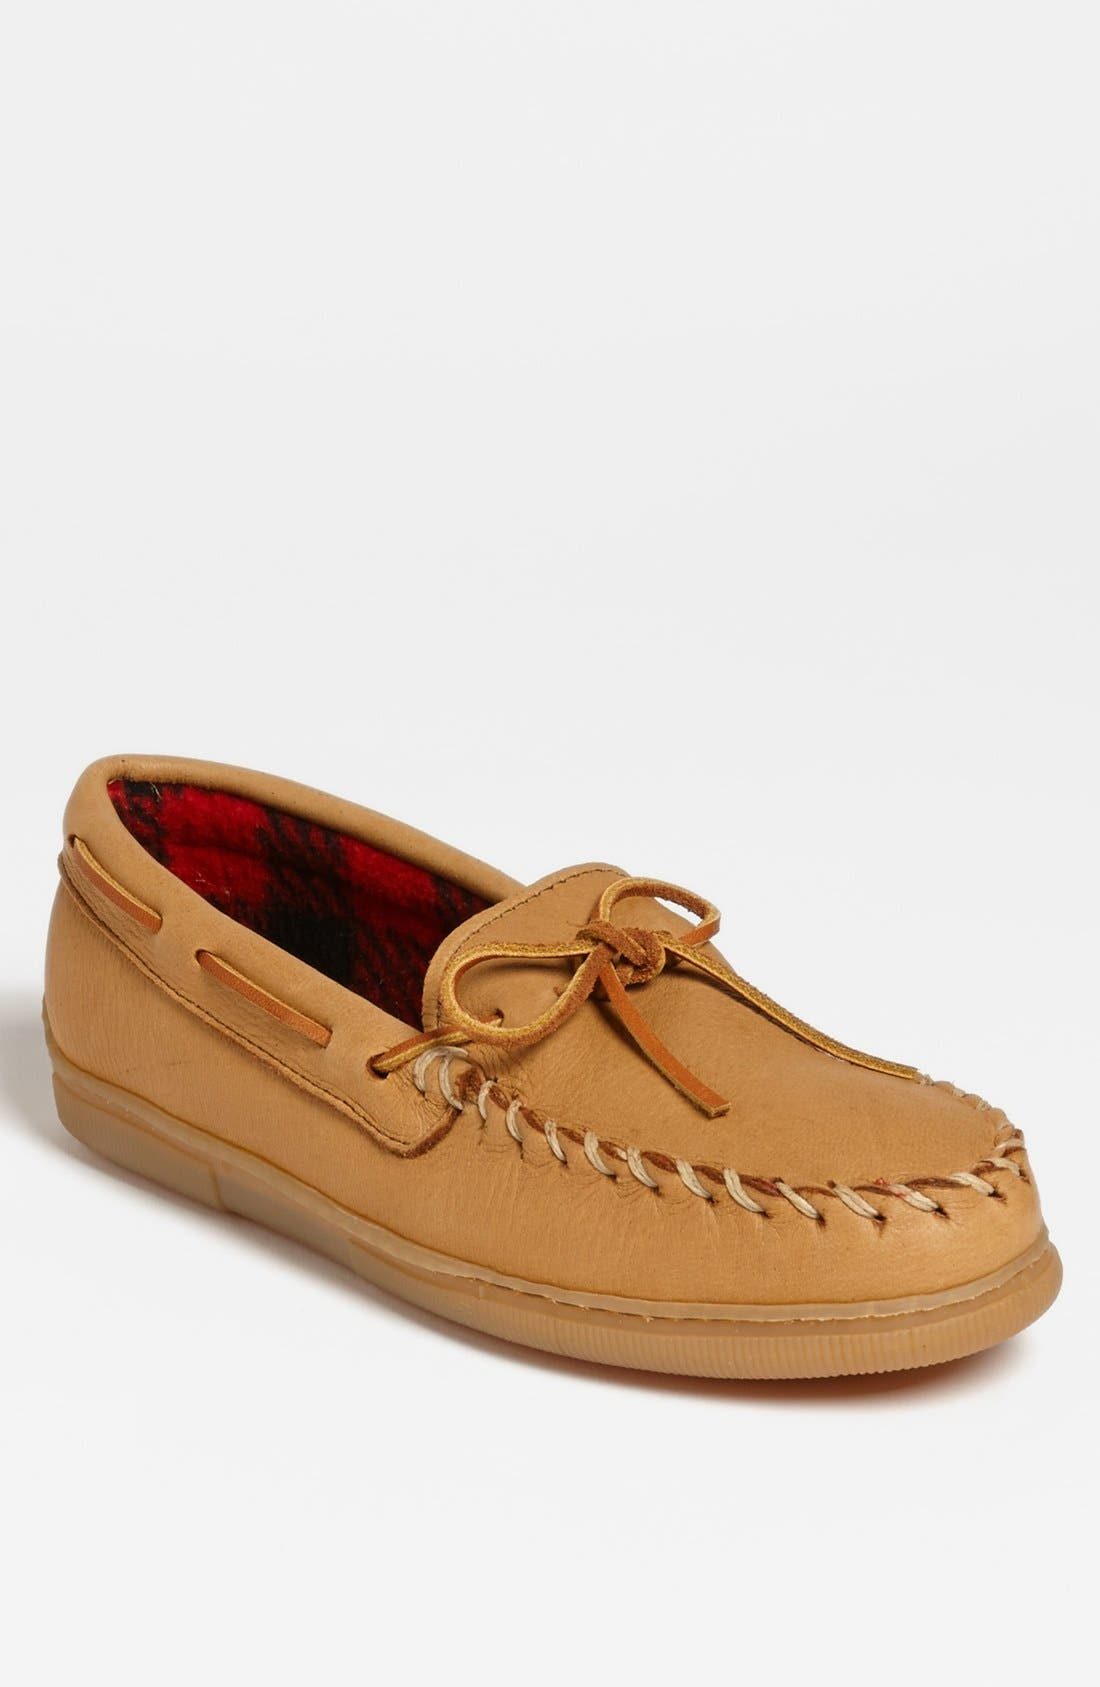 Moosehide Moccasin,                             Main thumbnail 1, color,                             NATURAL MOOSE